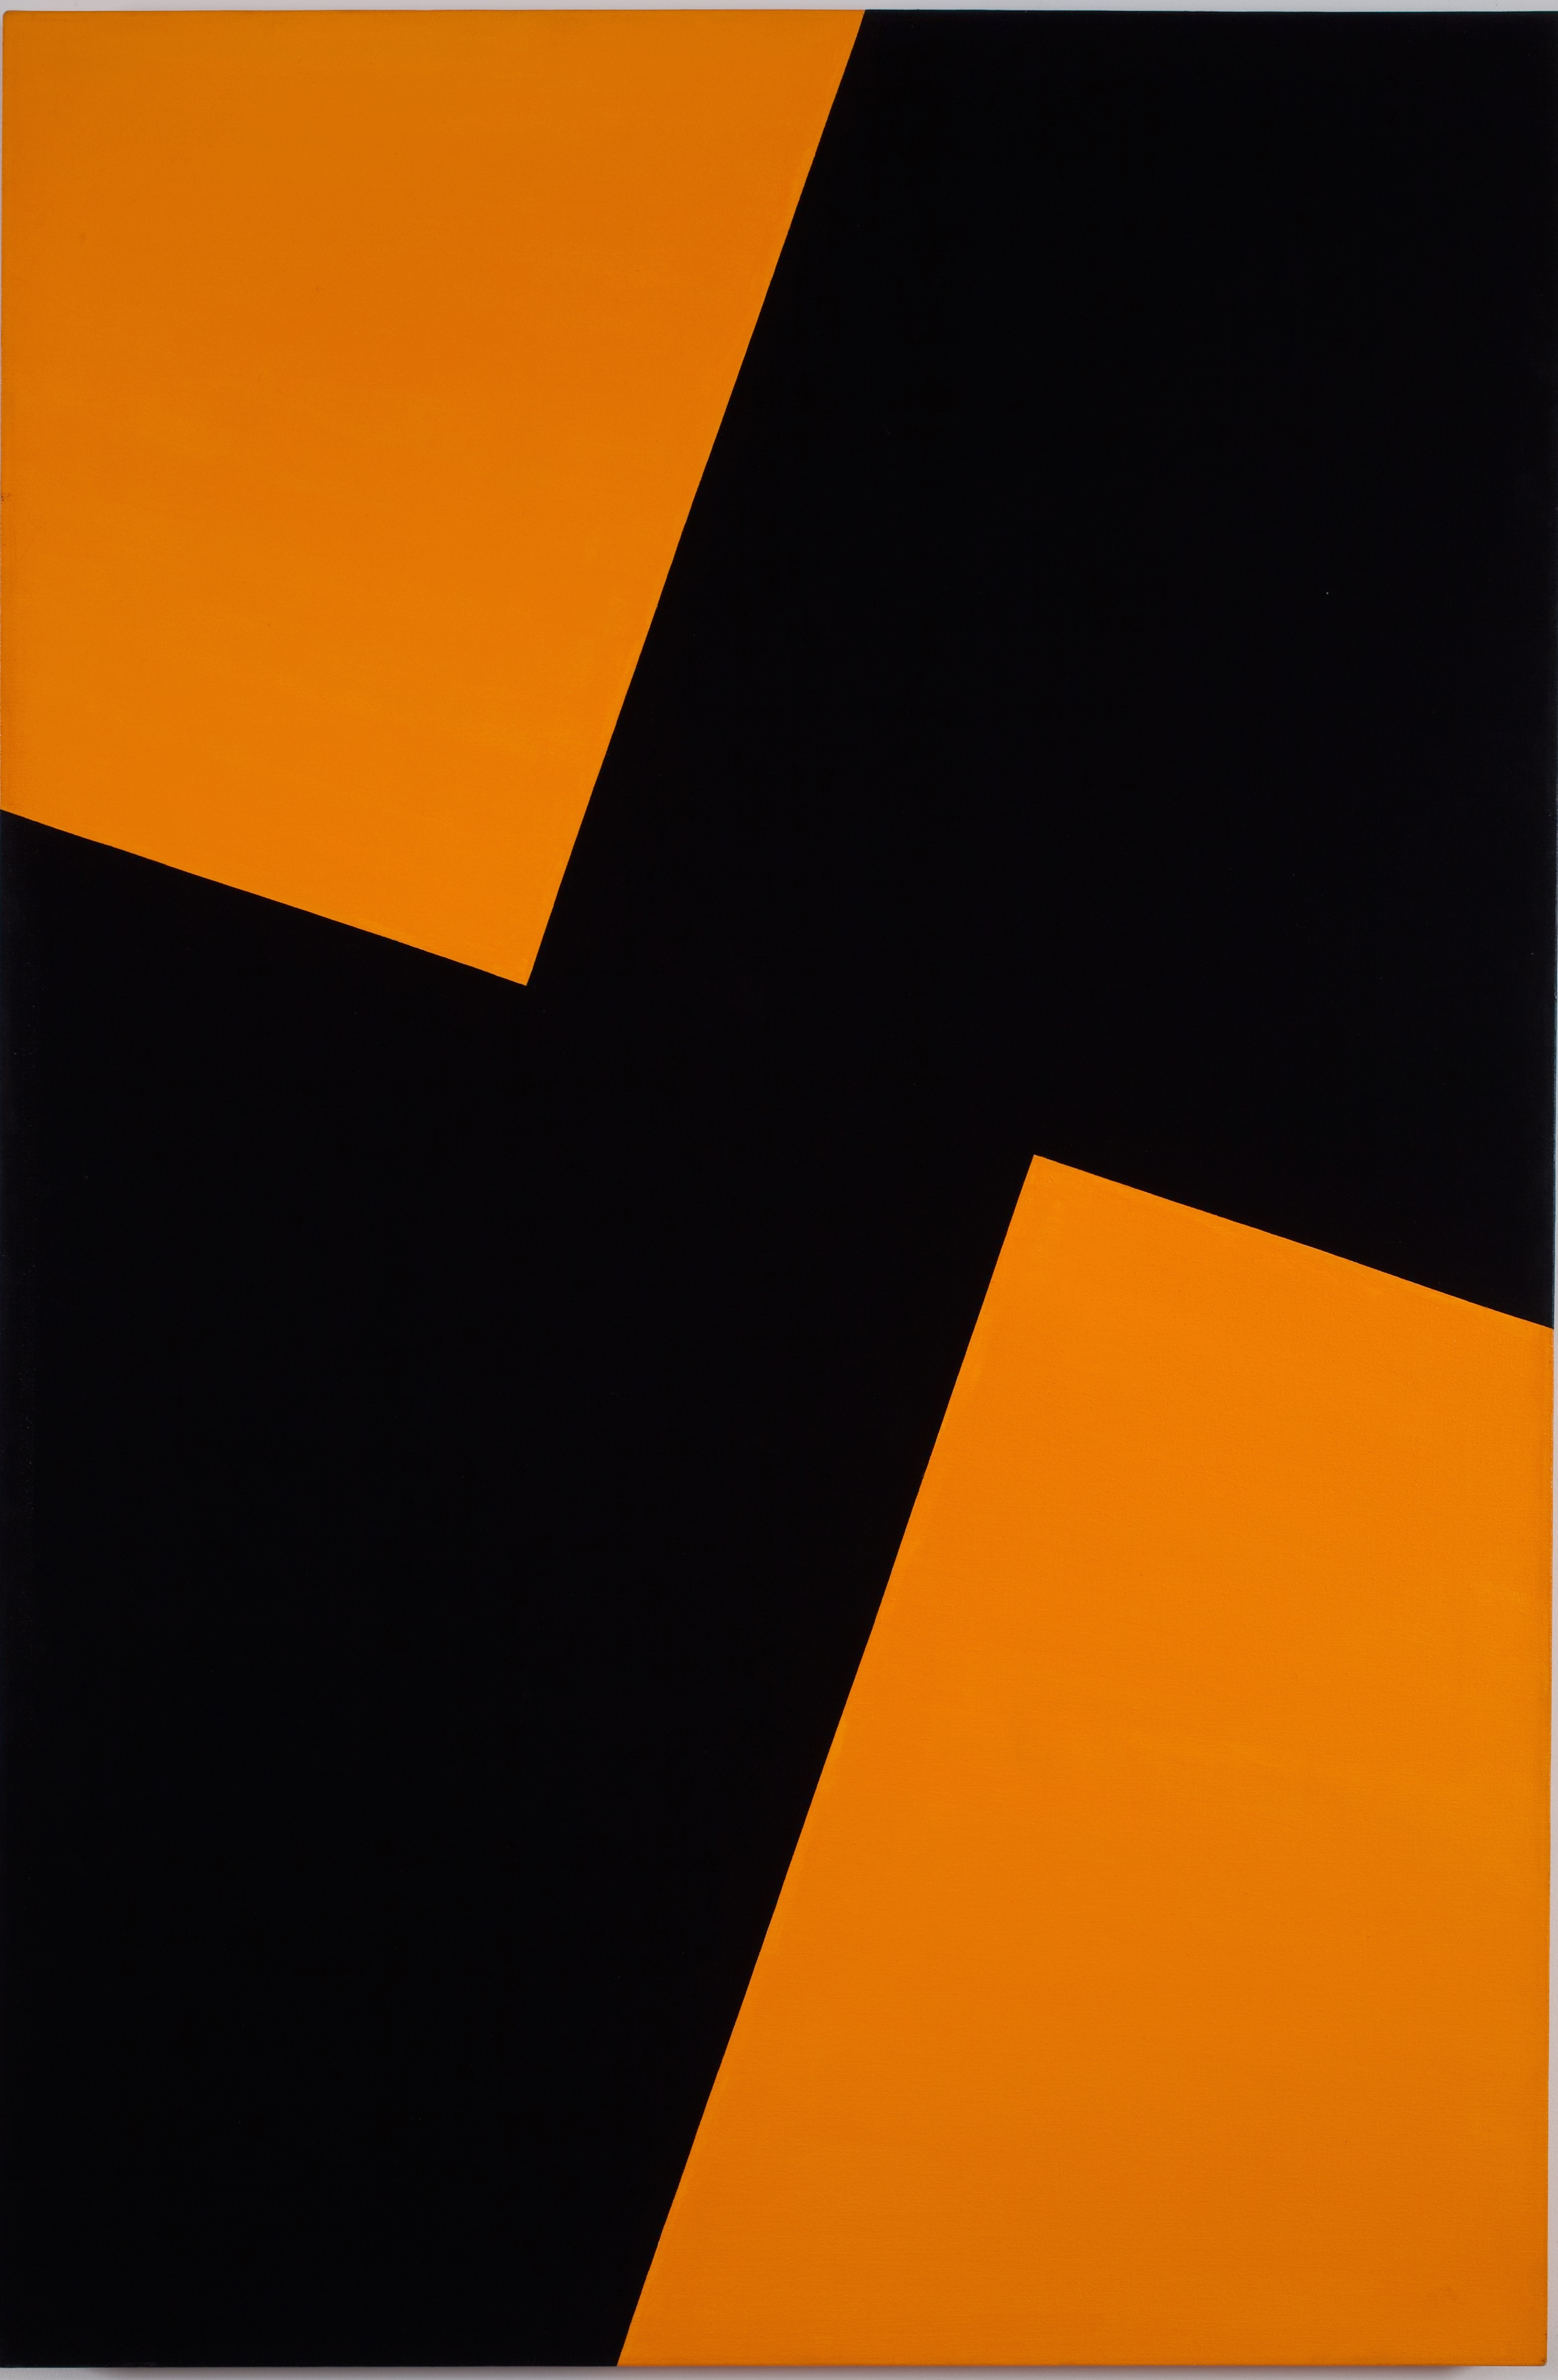 Carmen Herrera, Friday, 1978. Acrylic on canvas , 62 x 42 in. (157.5 x 106.7 cm). Courtesy the artist and Lisson Gallery © Carmen Herrera